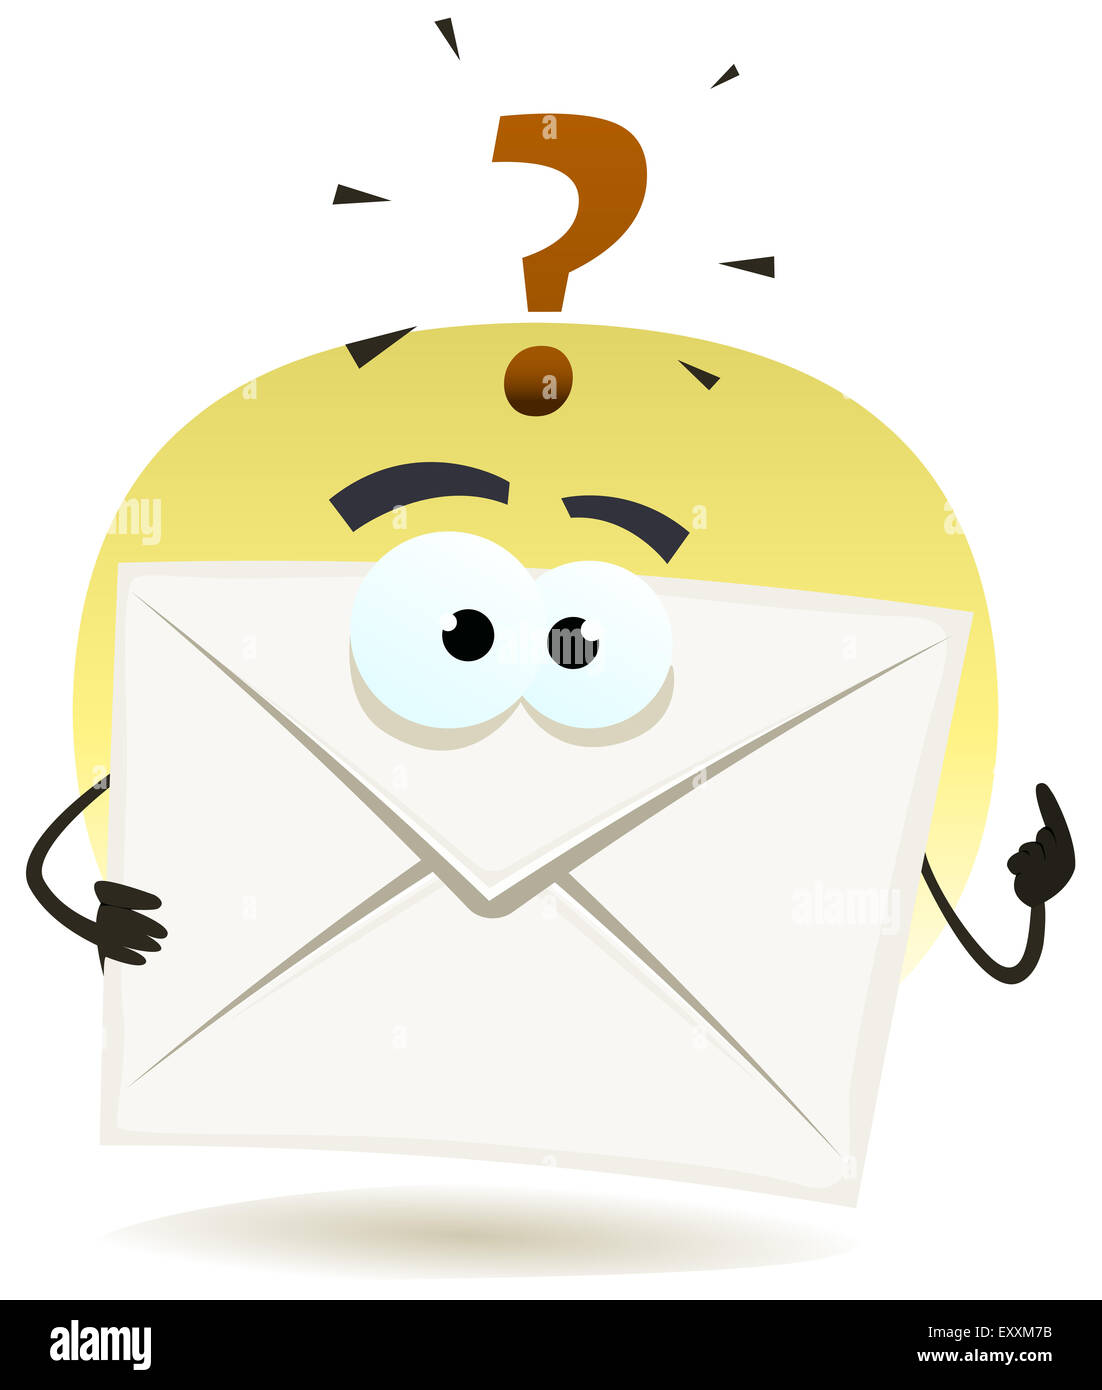 Illustration of a contact email icon envelope character asking question for support - Stock Image